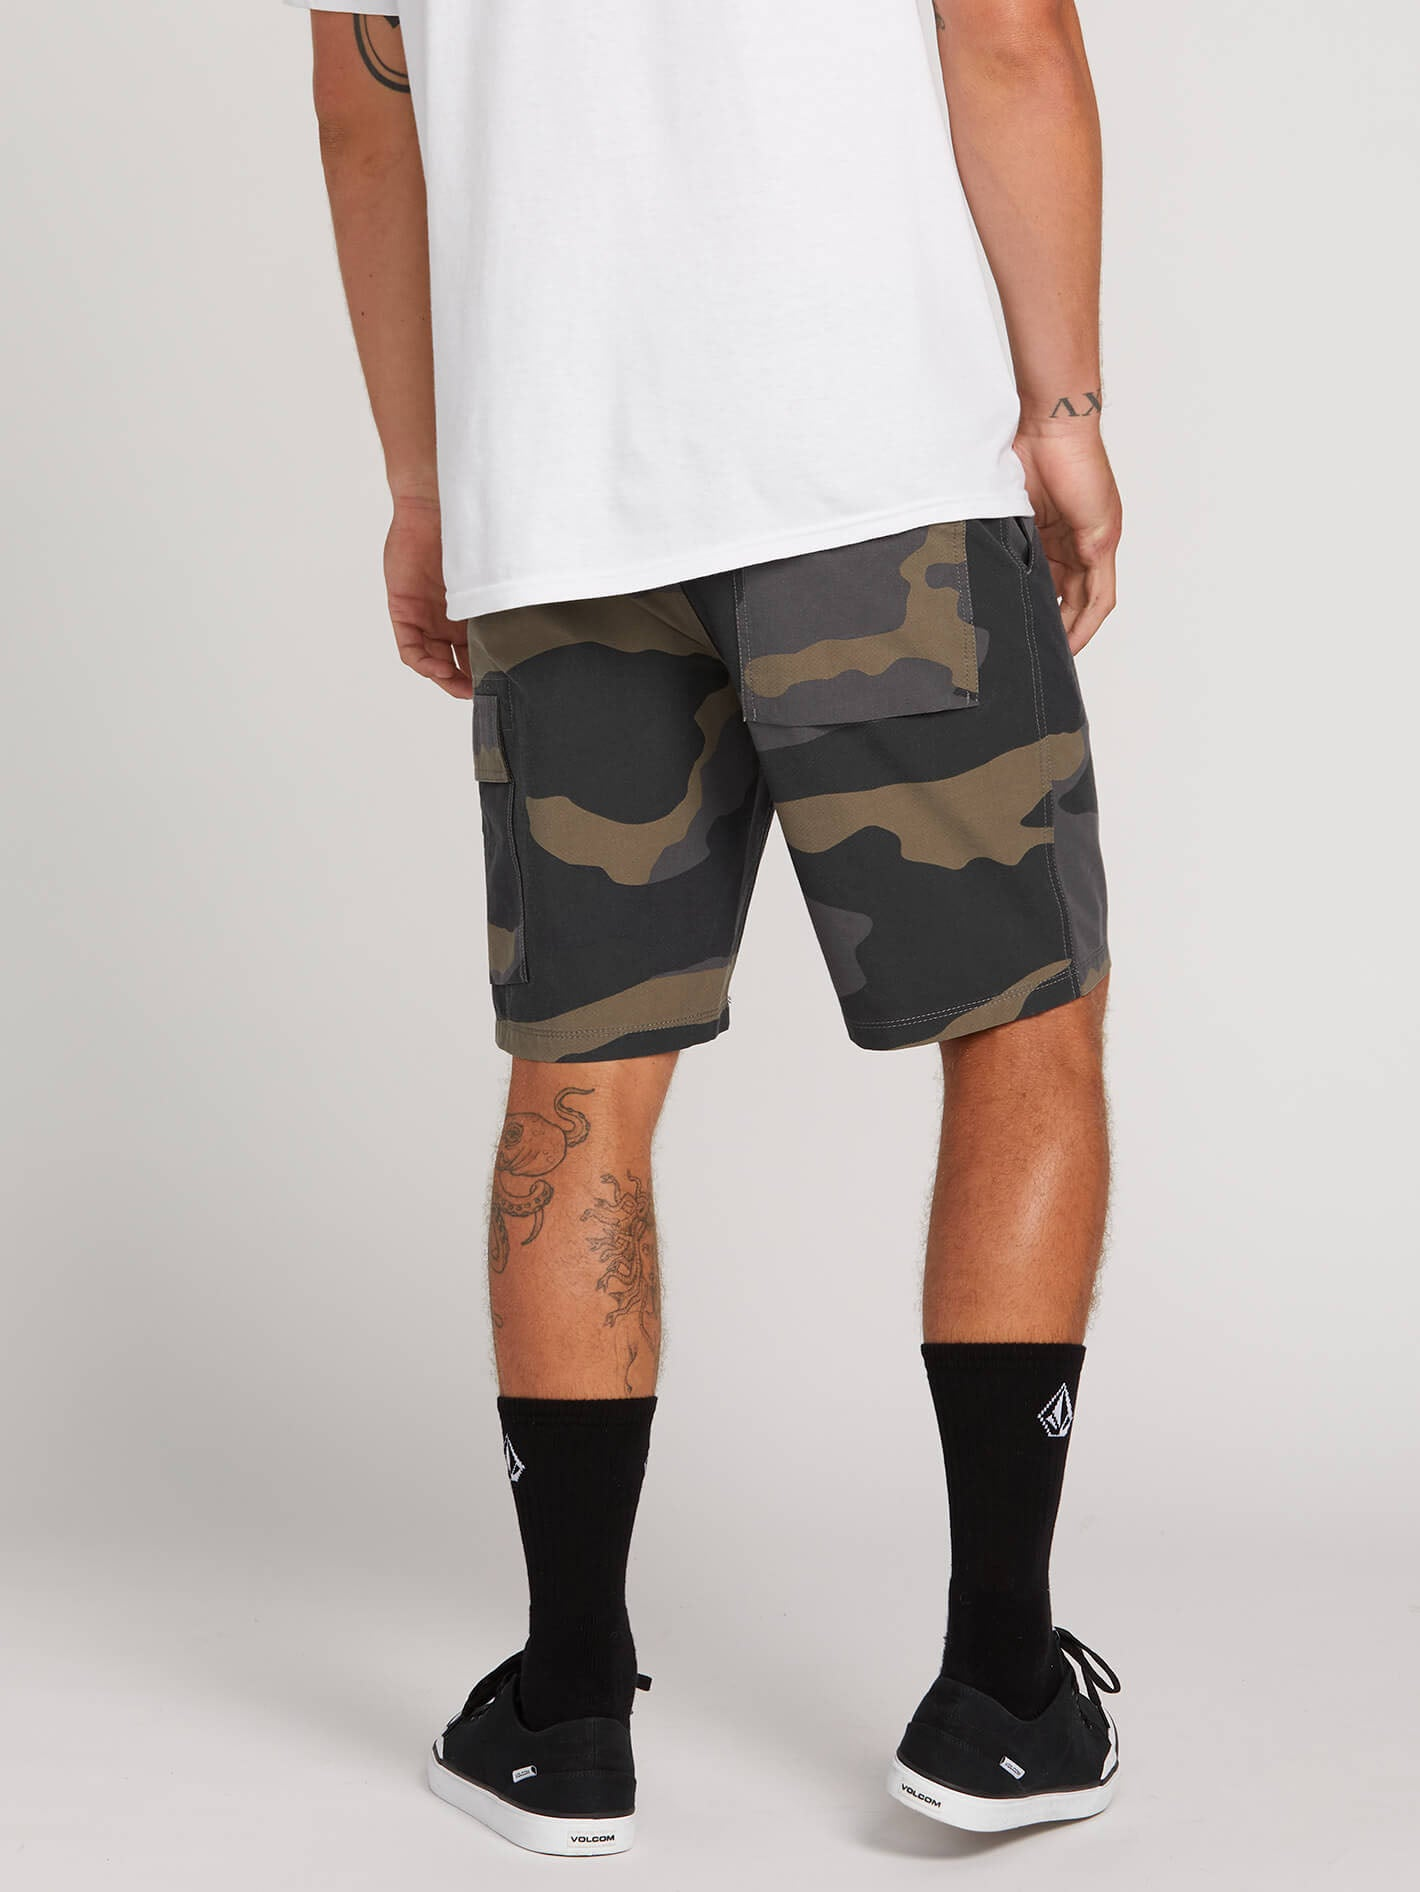 4420266d99 Surf N' Turf Yutes Hybrid Shorts - Dark Camo in DARK CAMO - Alternative View